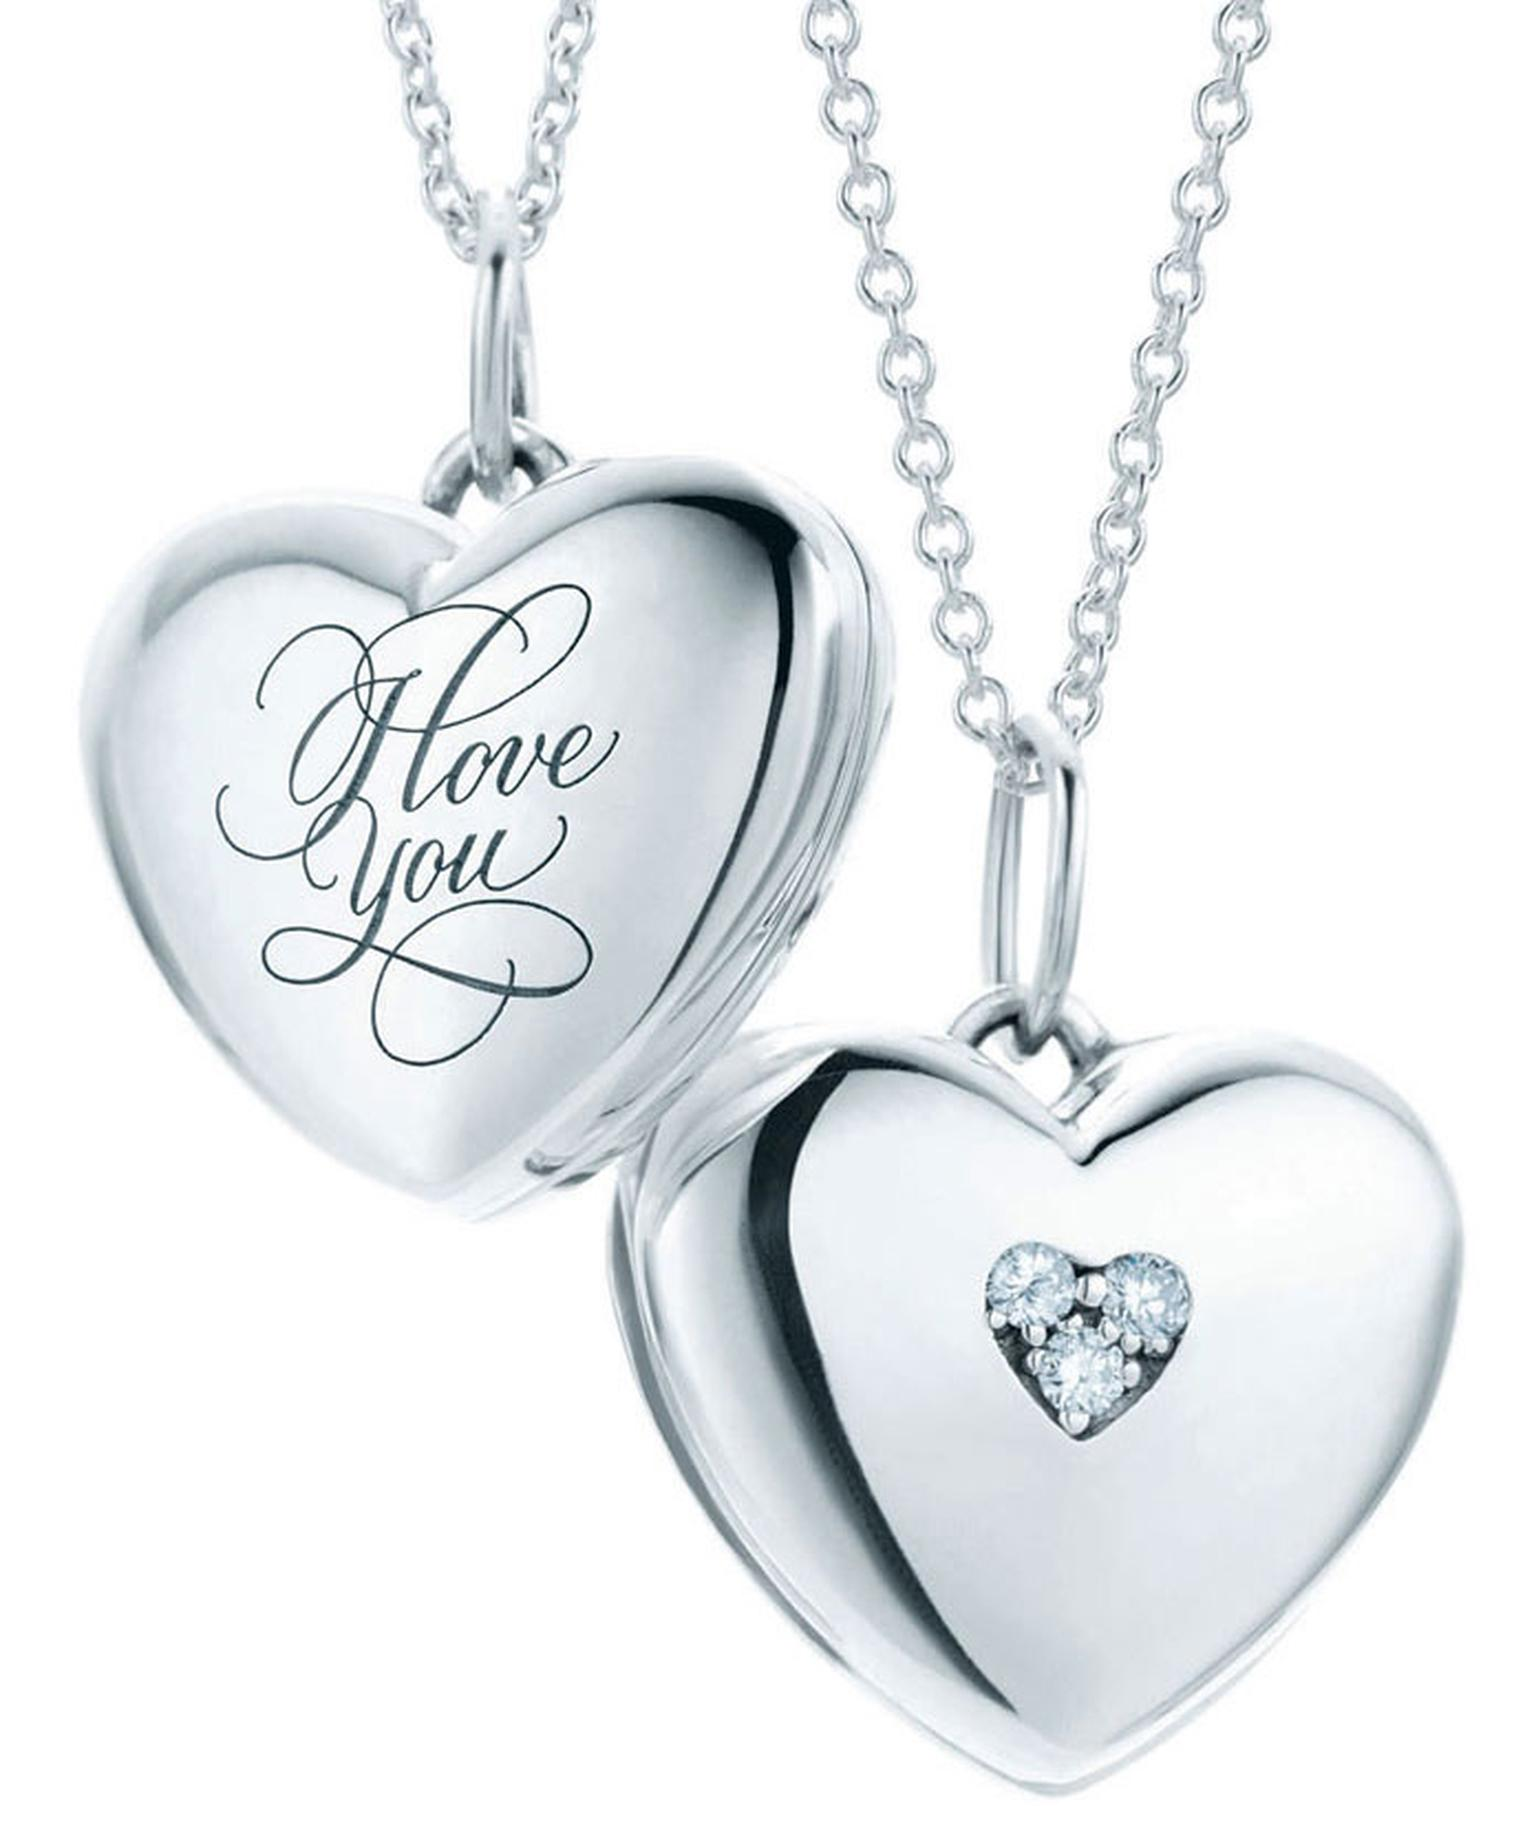 Valentines - Tiffany-Hearts-lockets-with-'I-Love-You'-inscription-in-sterling-silver-with-diamond-on-sterling-silver-pendant-chain-price-from-325GBP